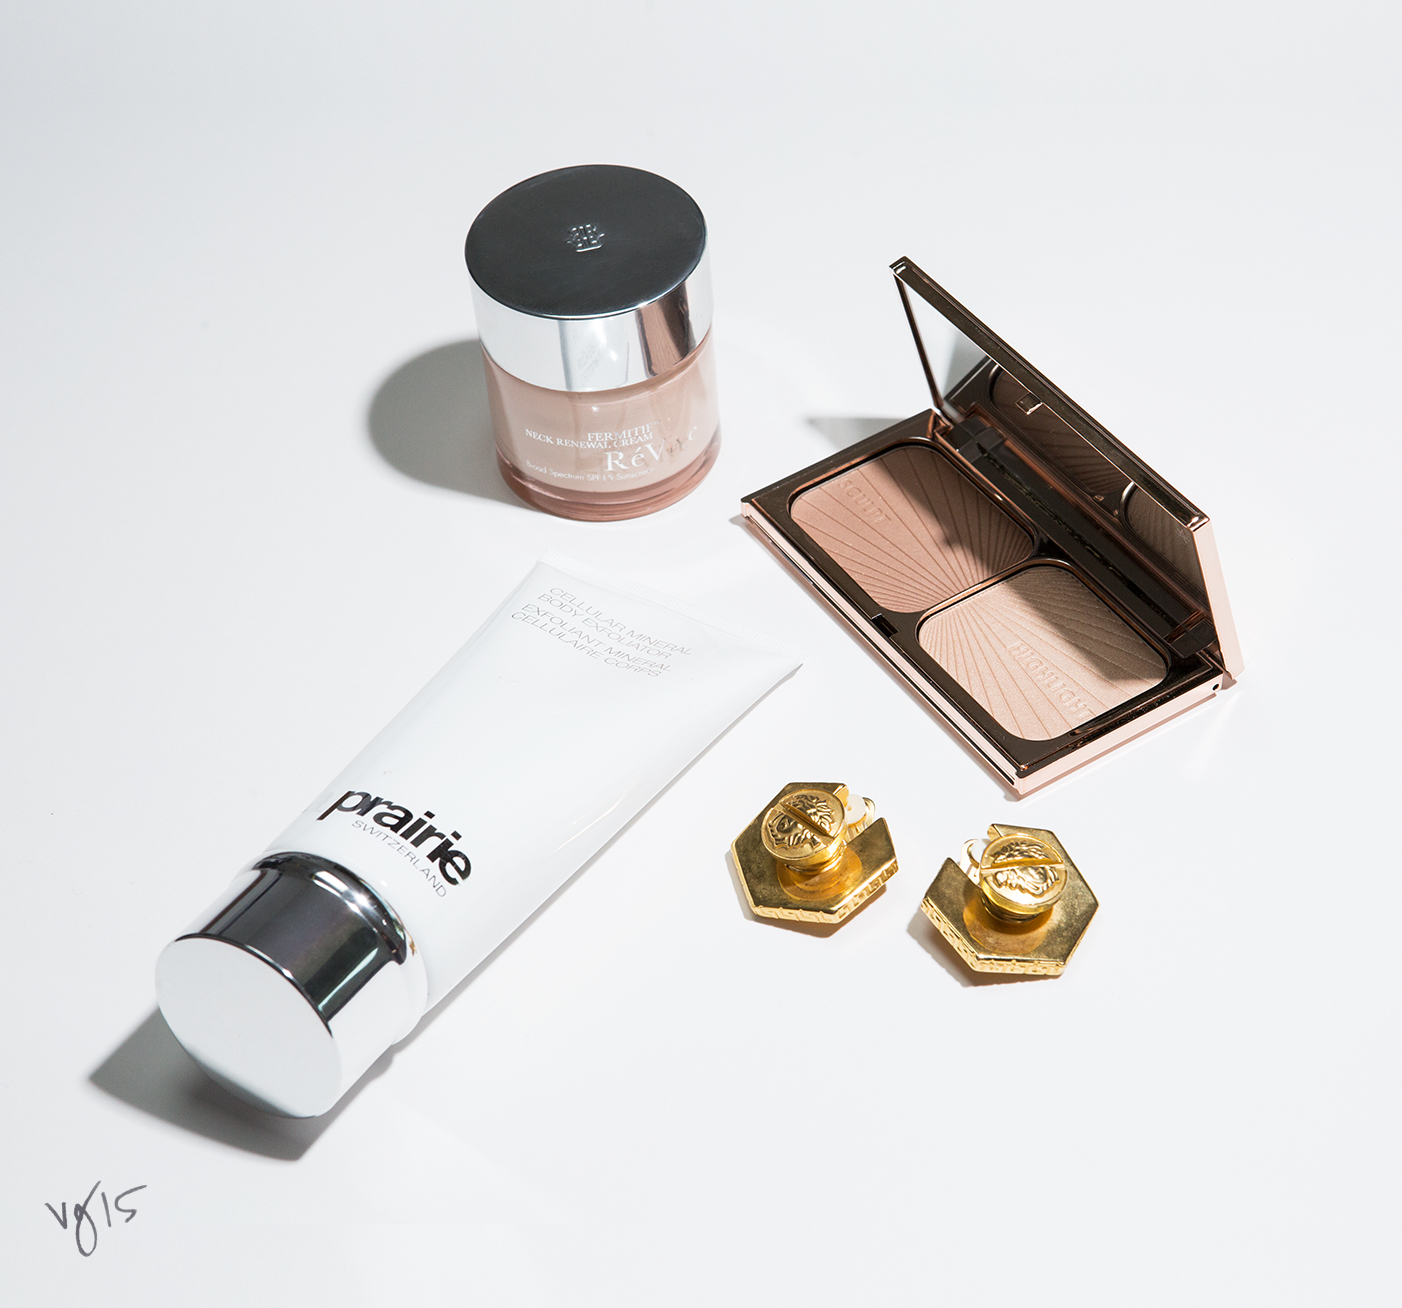 QUICK FIX KIT: Accentuate The Décolleté  |  Learn to pamper and highlight your best asset in three easy steps  |  #VIOLETGREY, The Industry's Beauty Edit